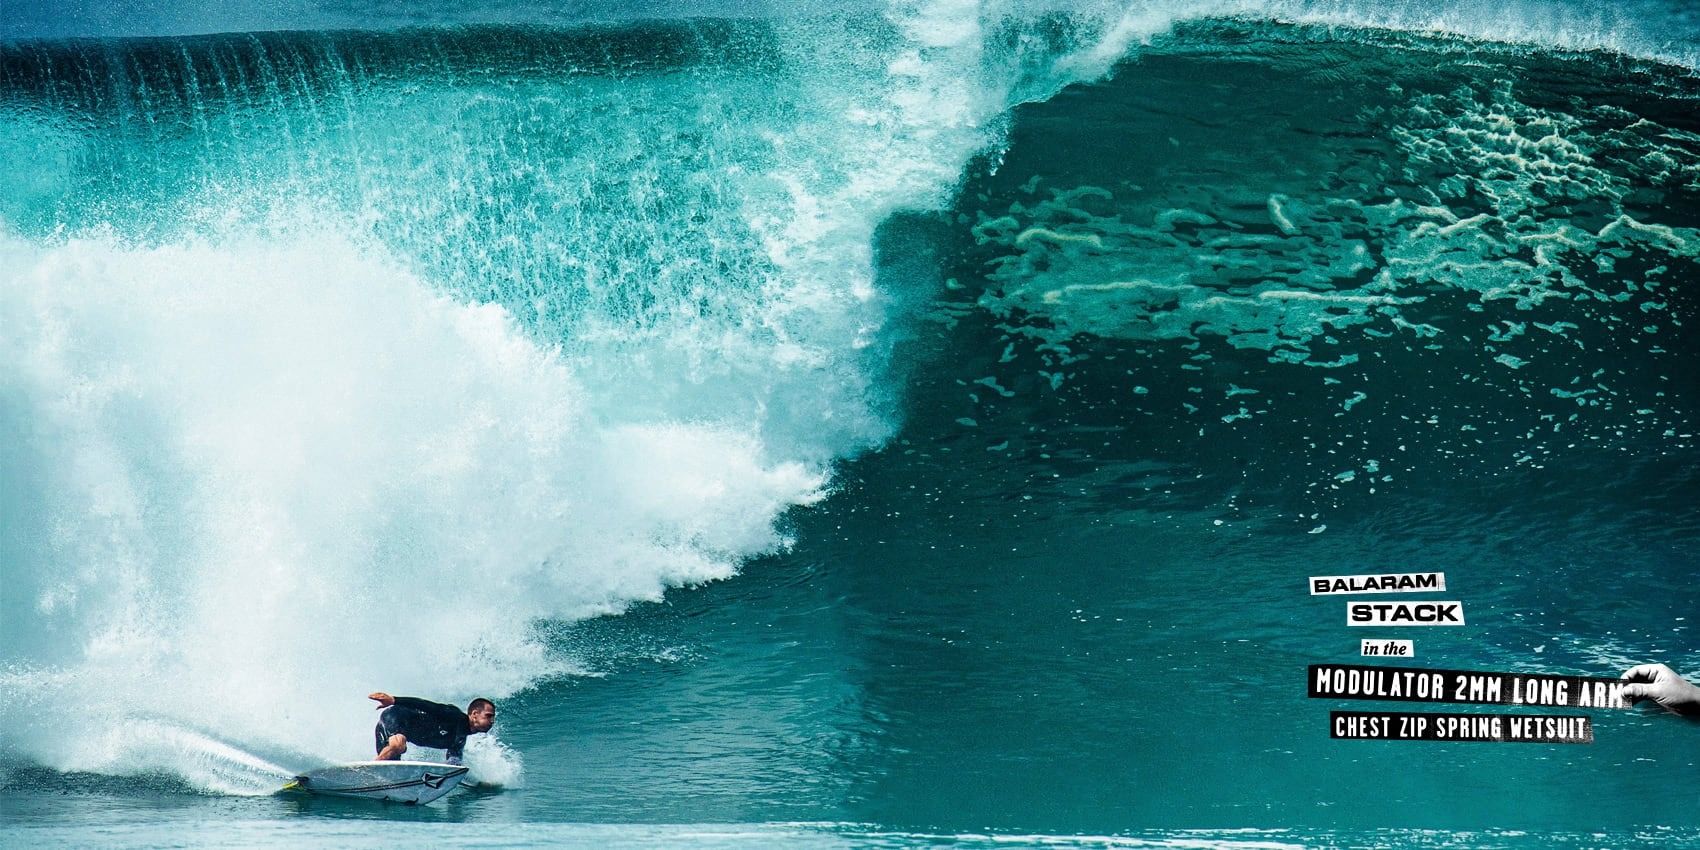 balaram stack surfing wave in the Modulator 2mm Long Arm Chest Zip Spring Wetsuit